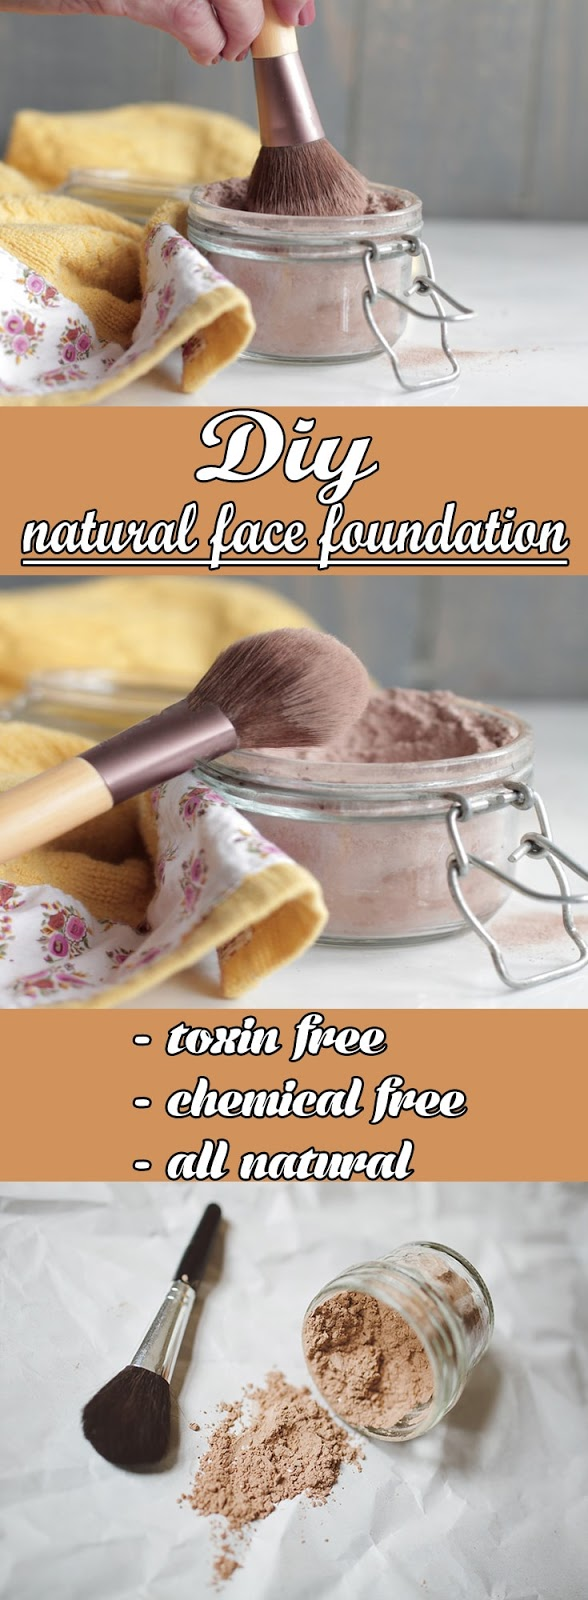 natural-face-foundation